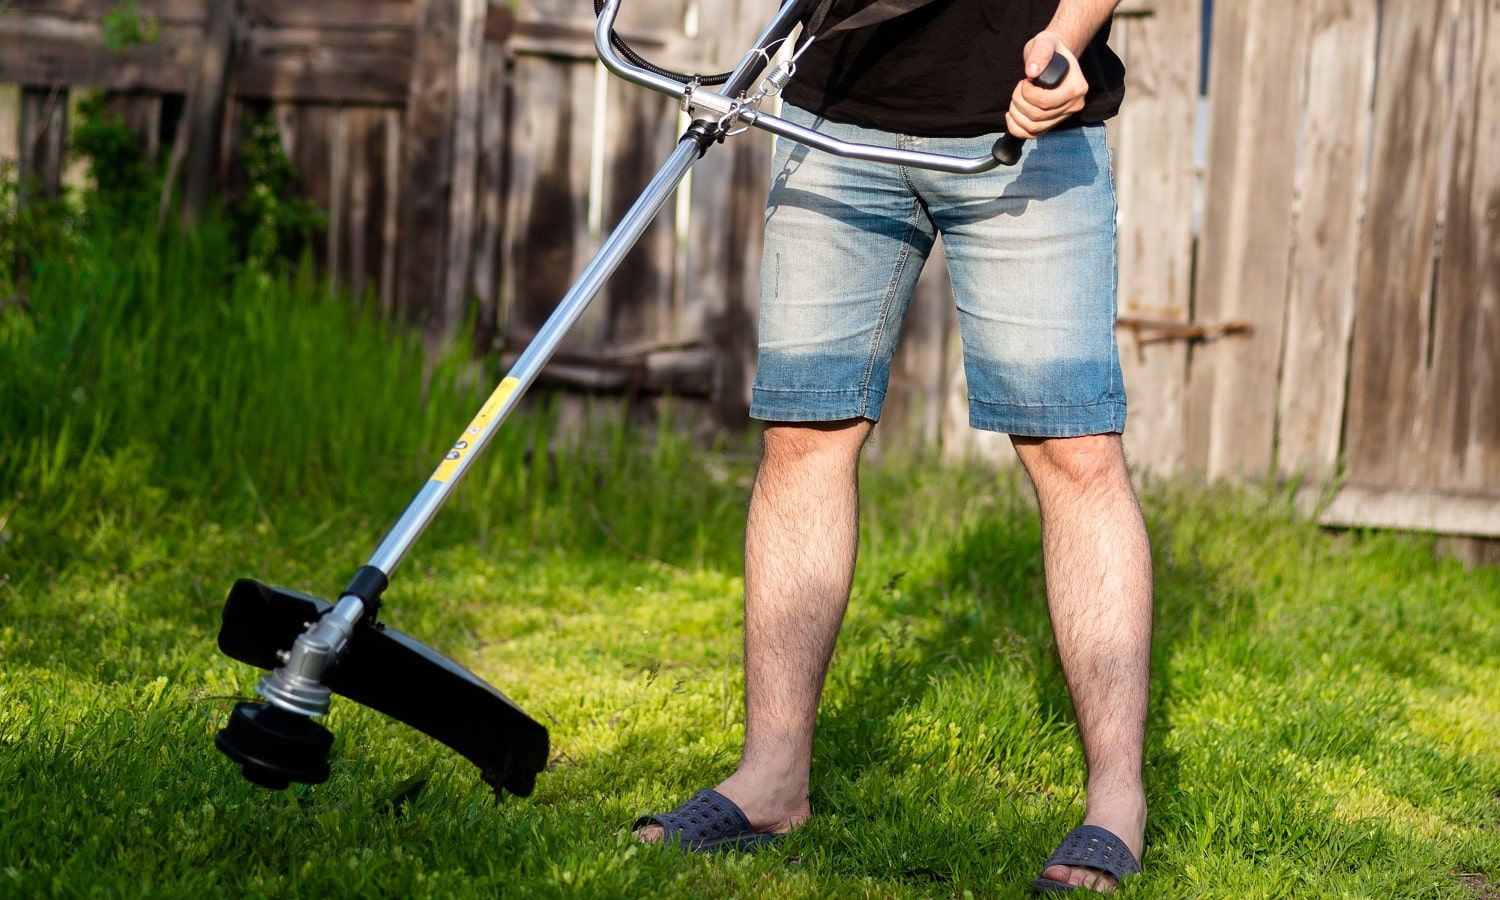 young man in shorts with a professional brush cutter mowing grass in the yard. green lawn, old fence as a background. sunny spring weather.